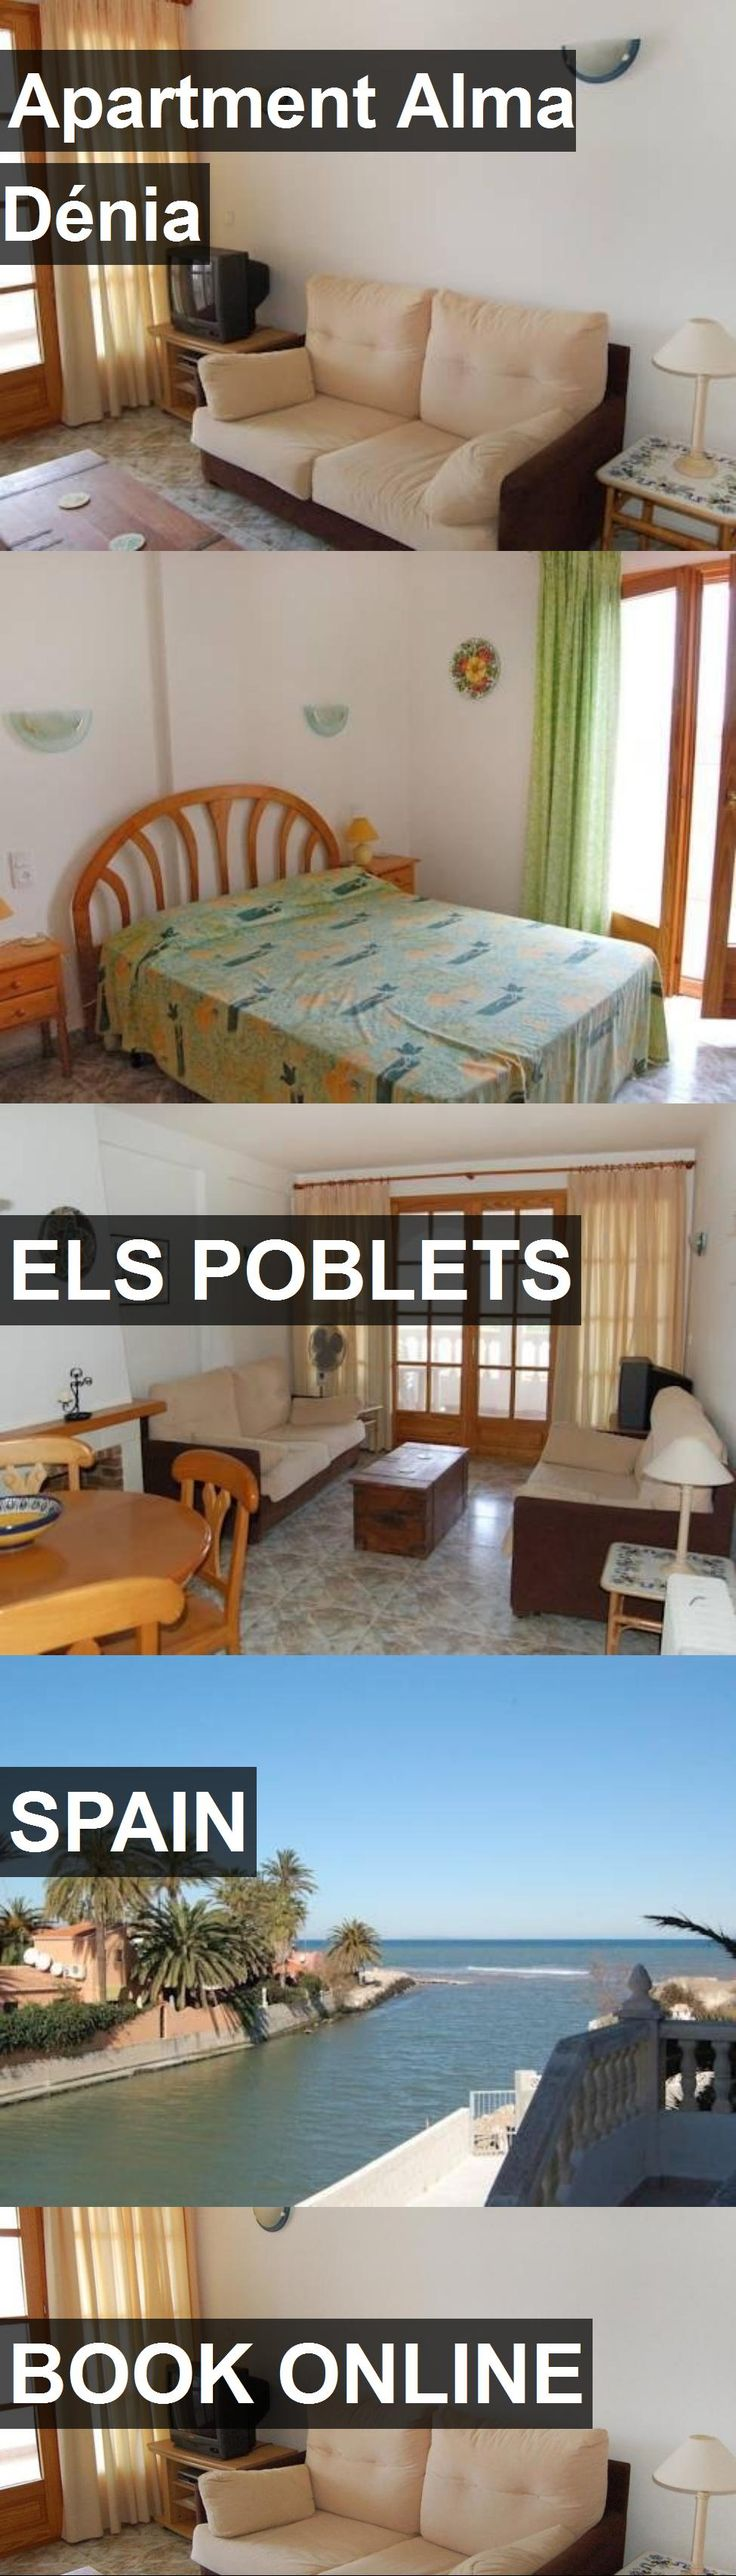 Apartment Alma Dénia in Els Poblets, Spain. For more information, photos, reviews and best prices please follow the link. #Spain #ElsPoblets #travel #vacation #apartment